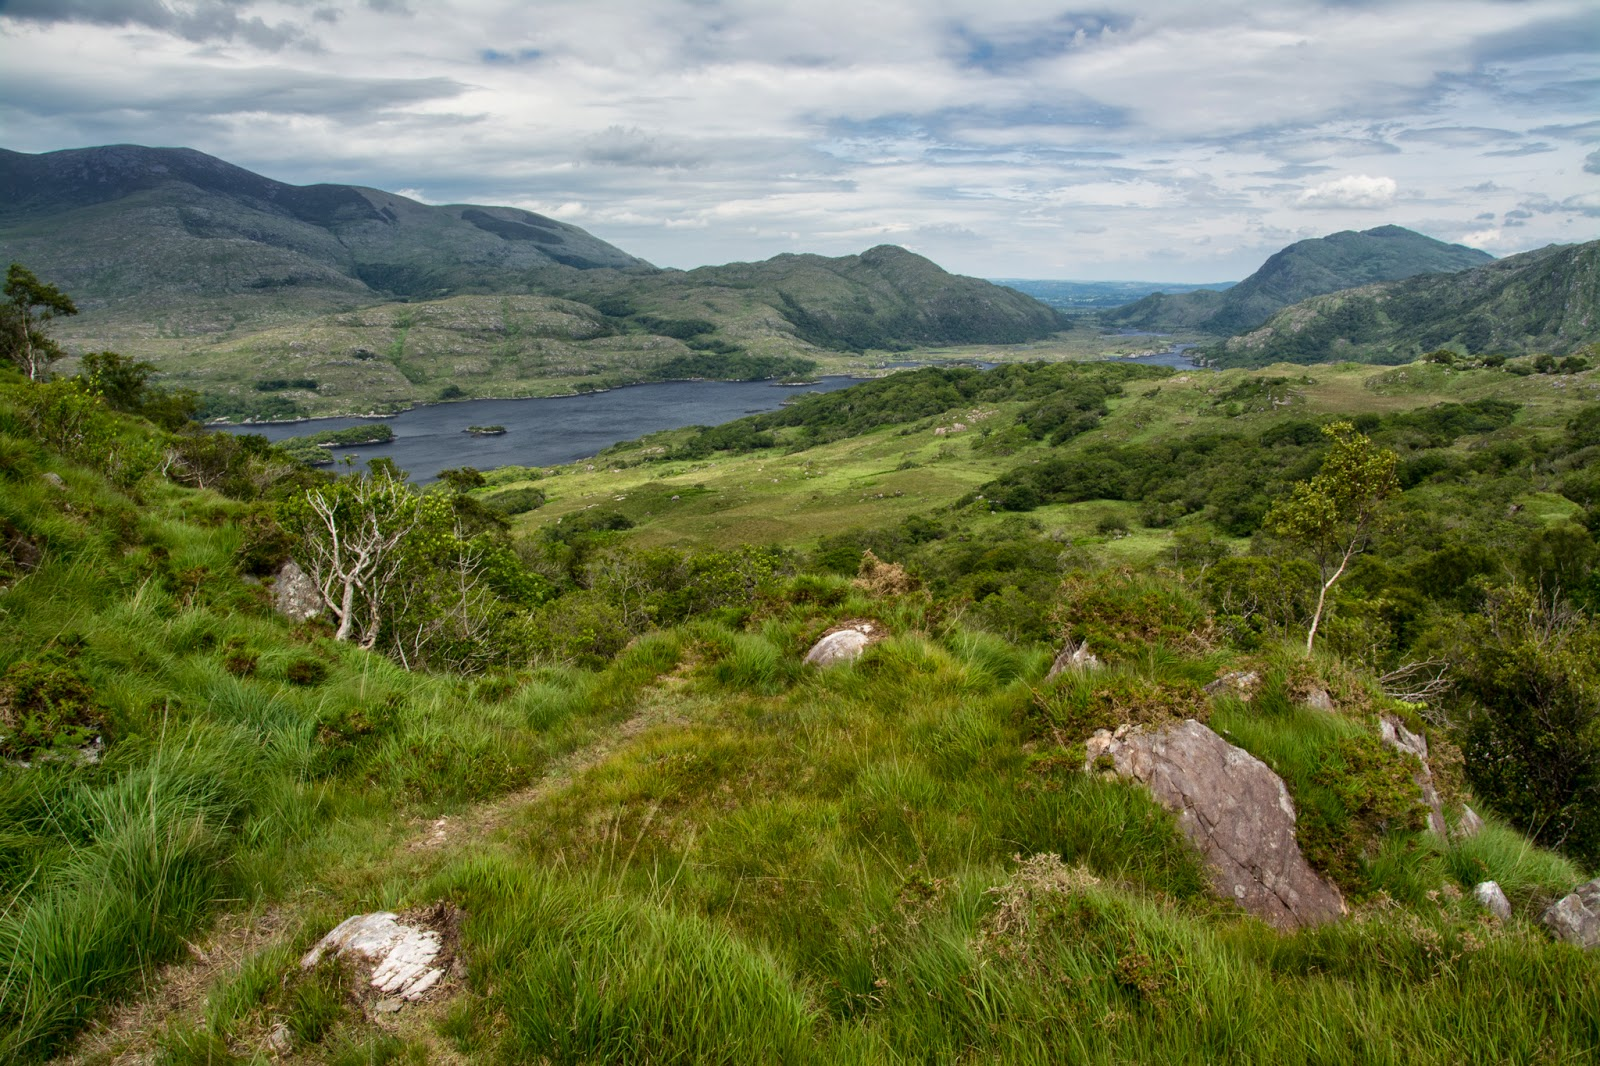 Upper Lake, Killarney National Park